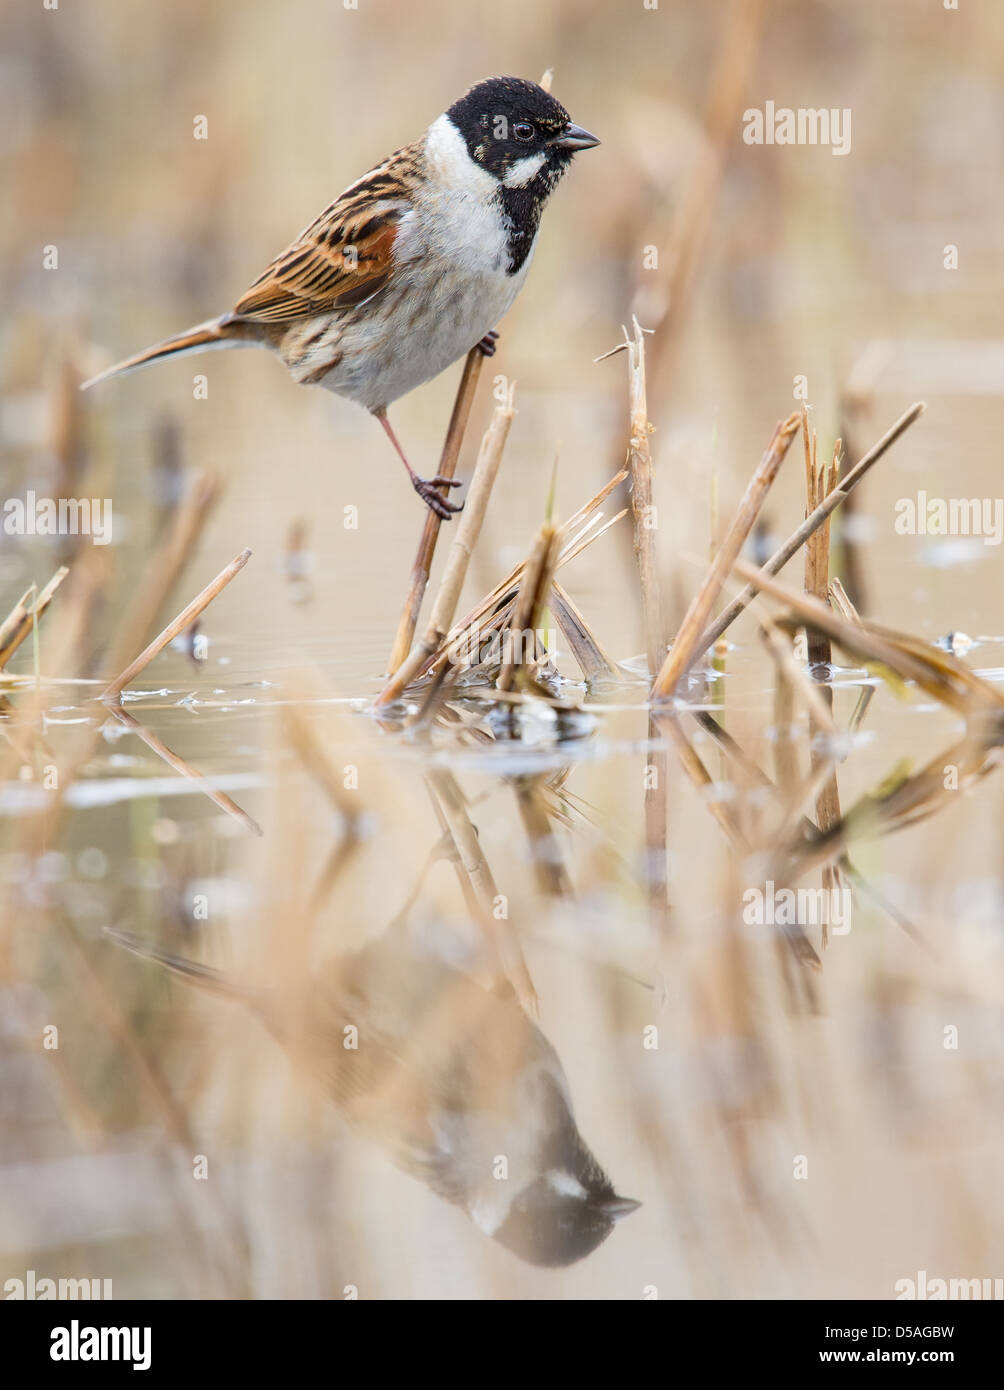 Close-up of a male reed bunting (Emberiza schoeniclus), Rainham marshes, England - Stock Image